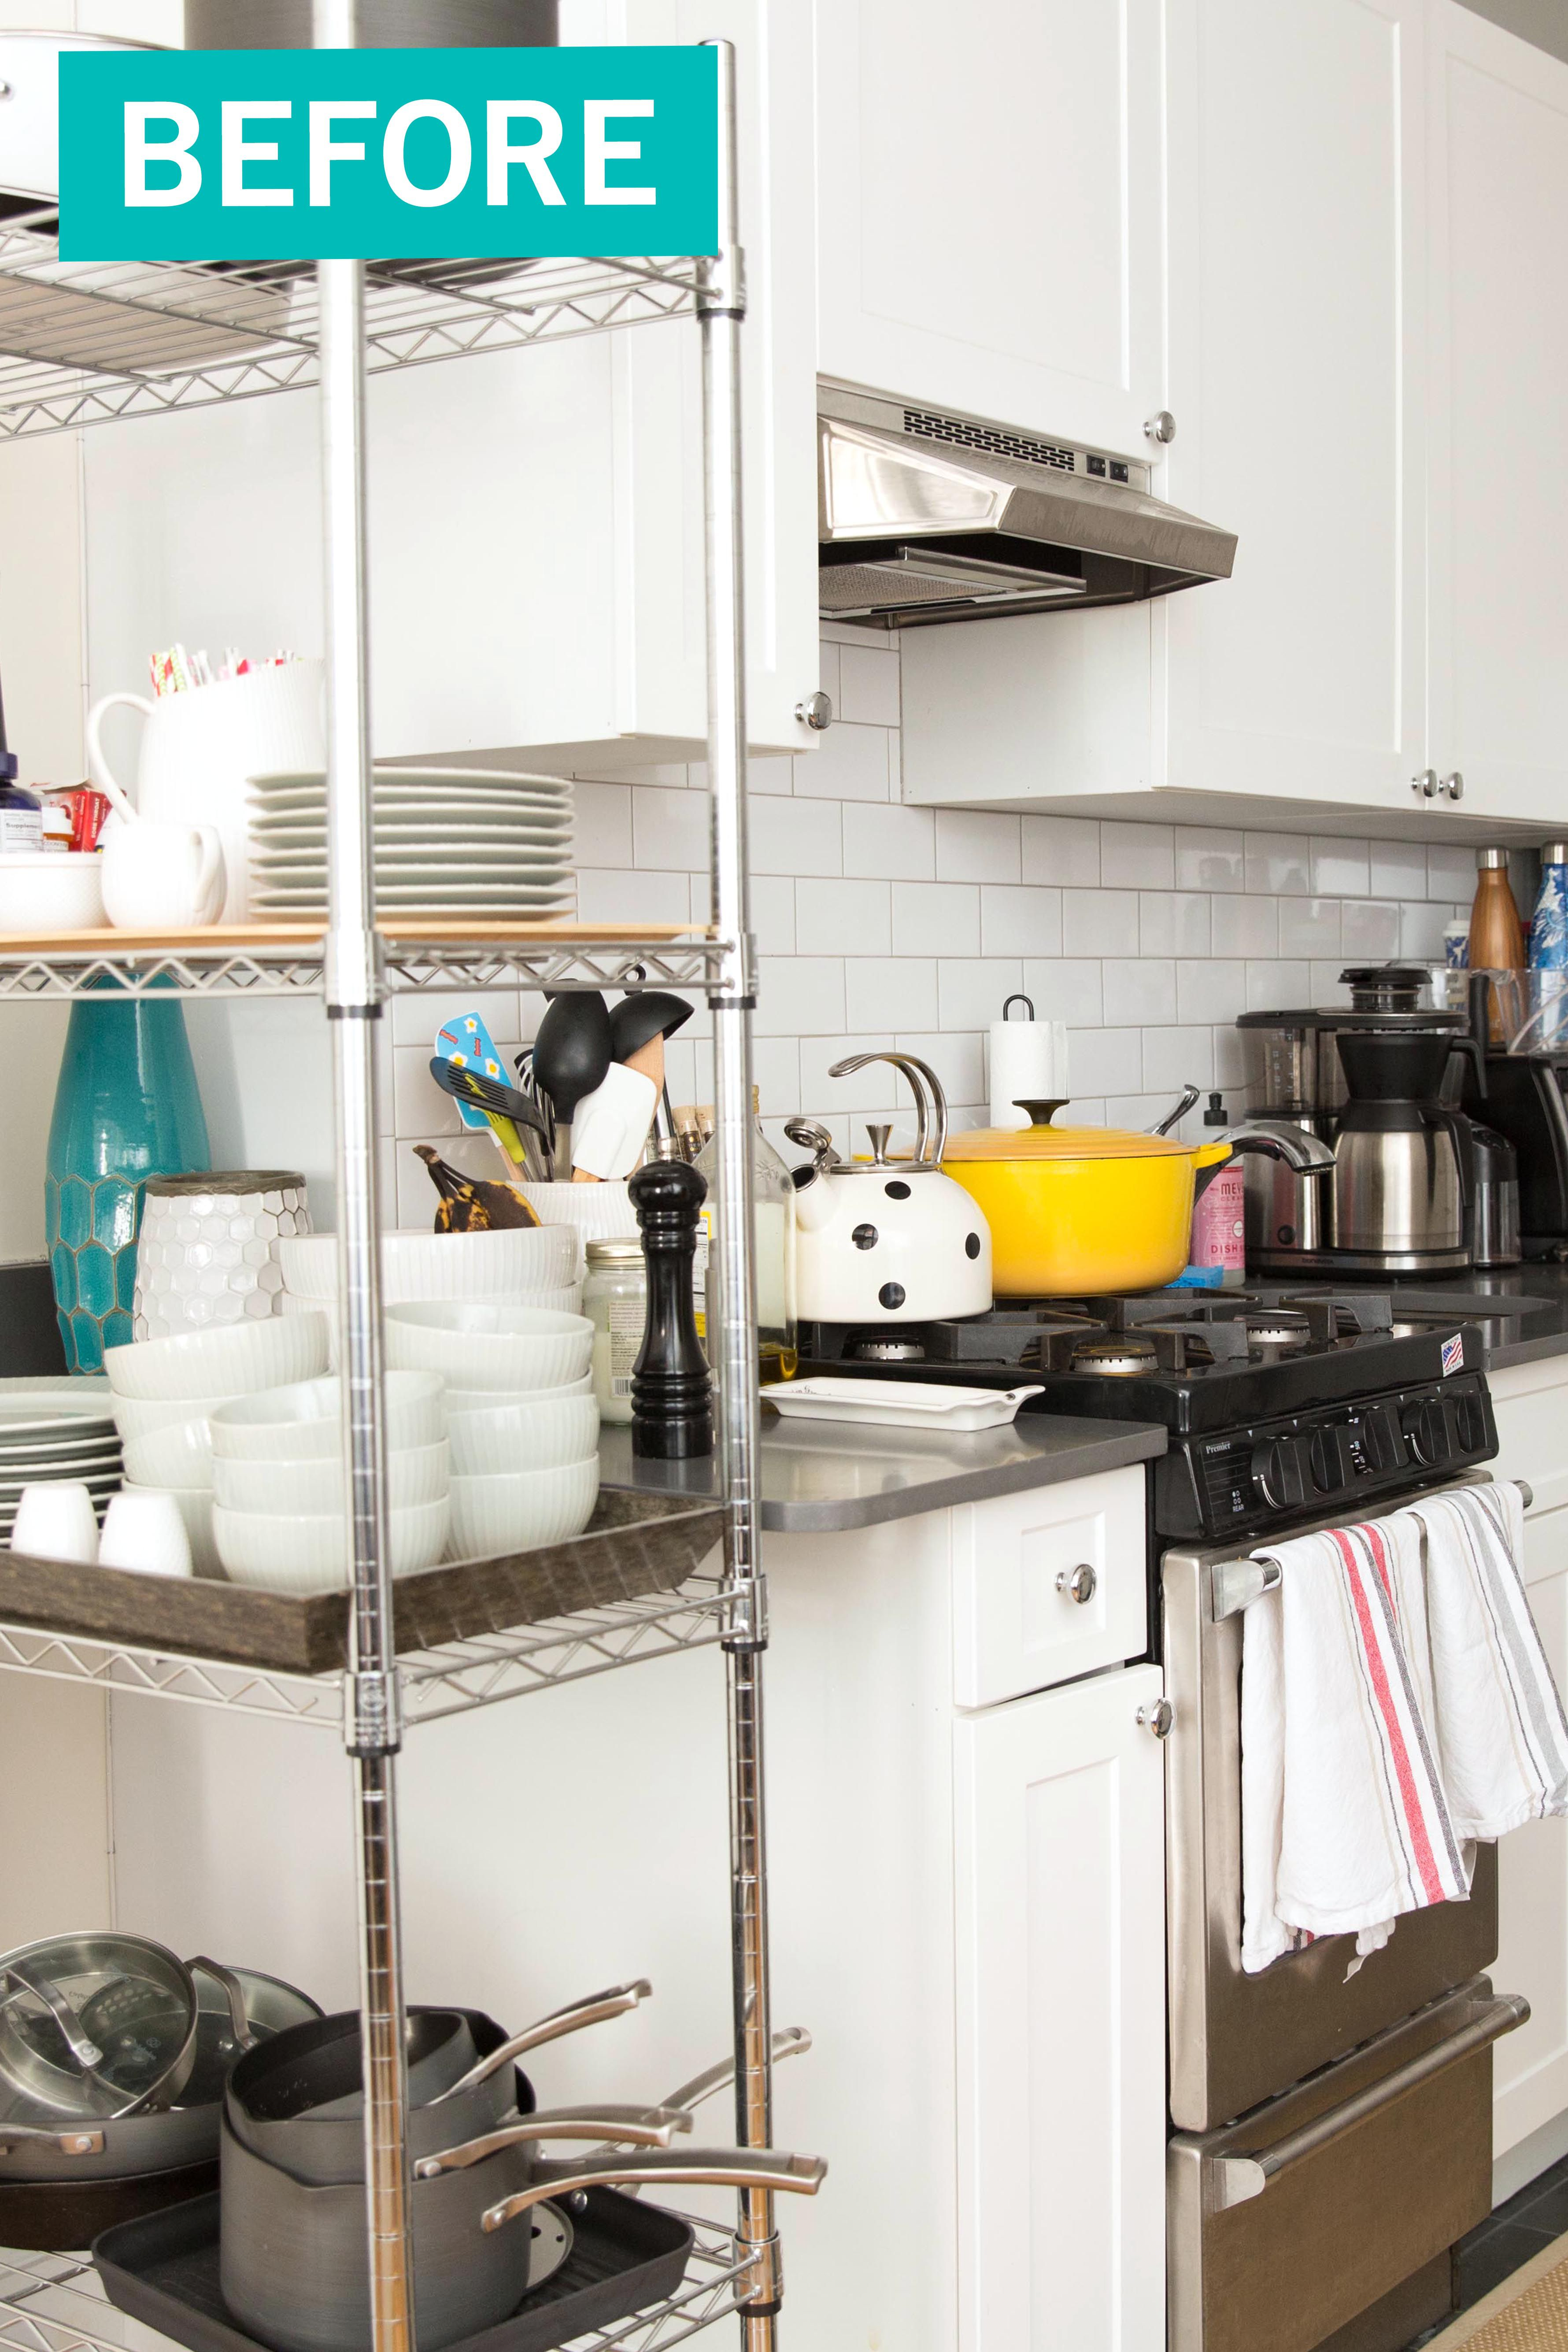 Kitchen Organization – Making Your Life Much Easier And Neater